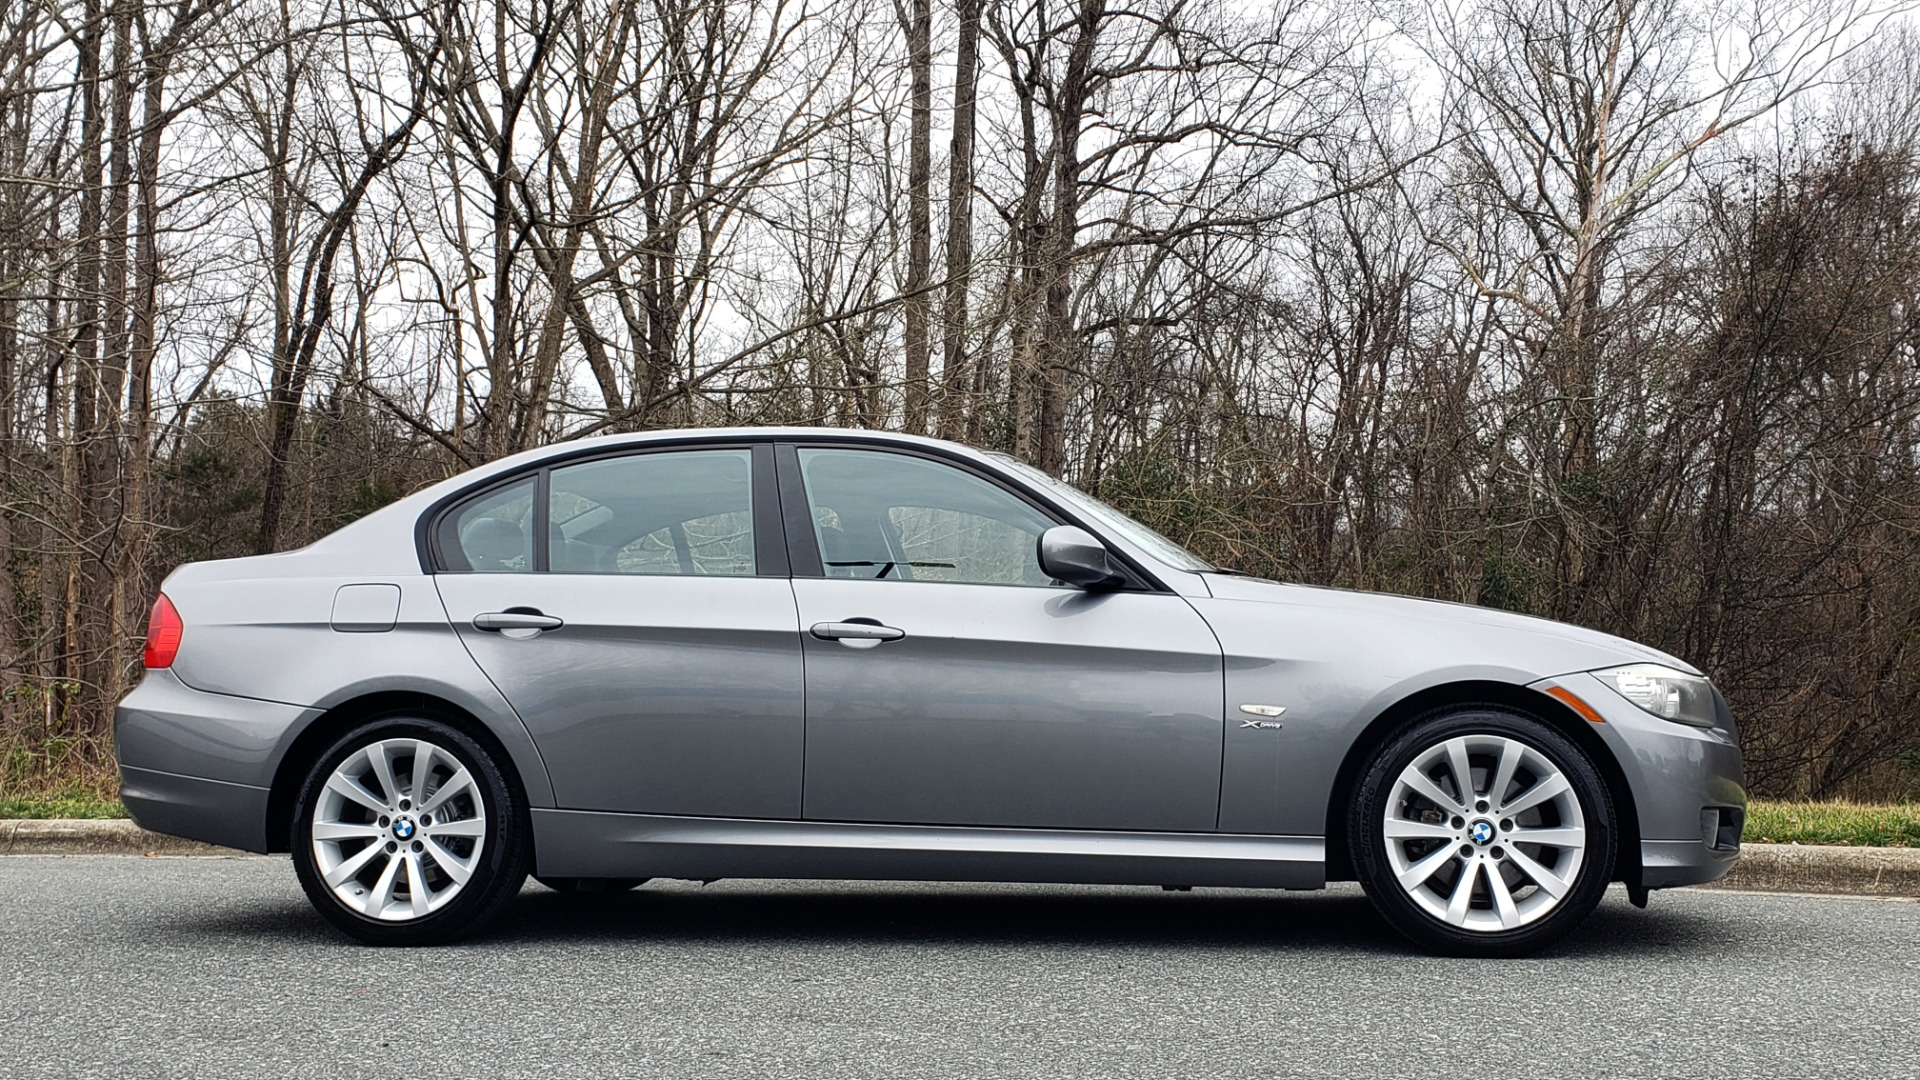 Used 2011 BMW 3 SERIES 328IXDRIVE PREMIUM / NAV / SUNROOF / HEATED SEATS for sale Sold at Formula Imports in Charlotte NC 28227 5